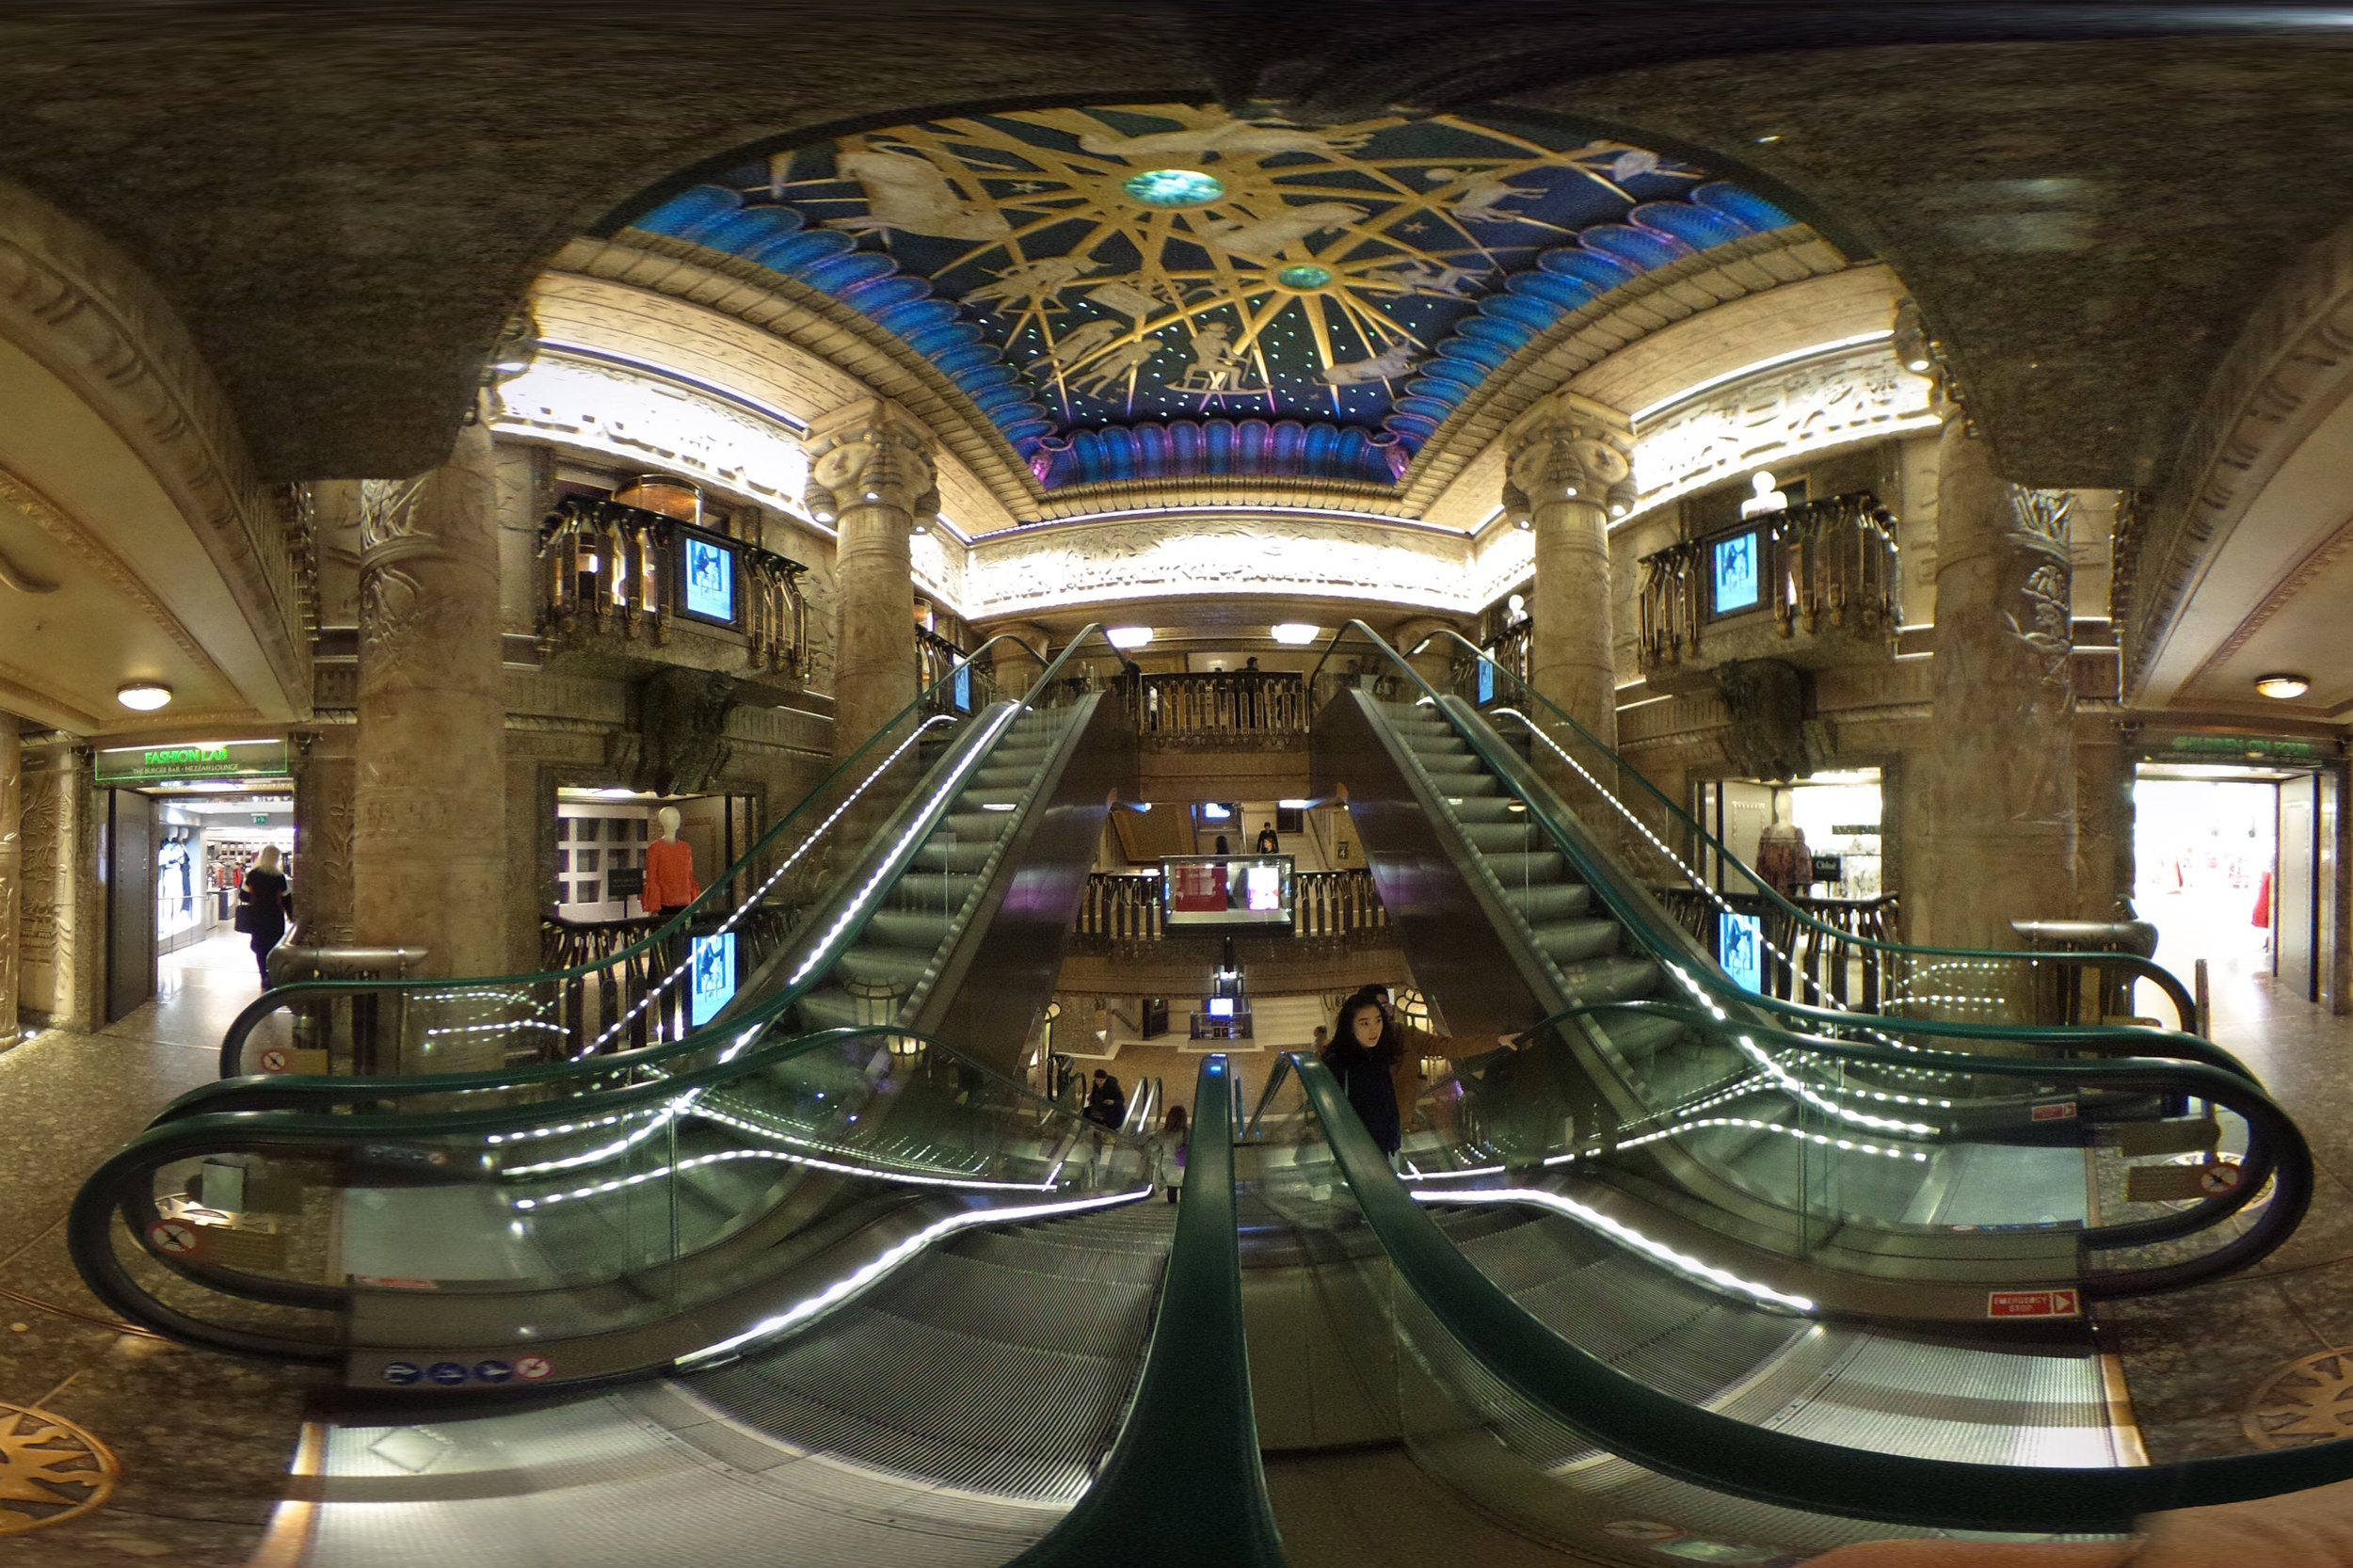 Check out the full 360 photo on my  Ricoh Theta site